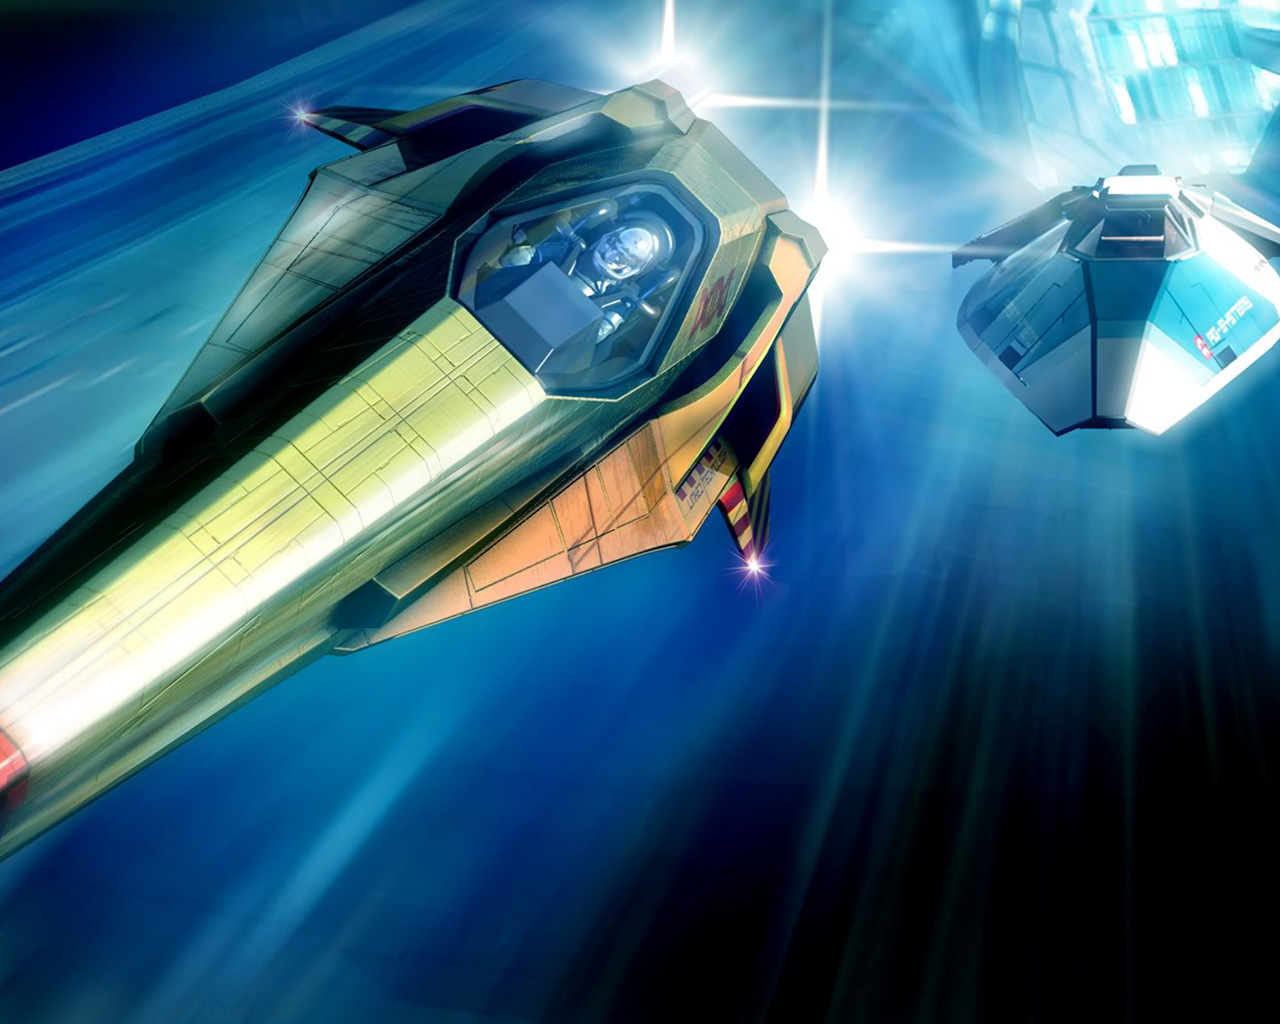 Wipeout HD Wallpaper in 1280x1024 1280x1024